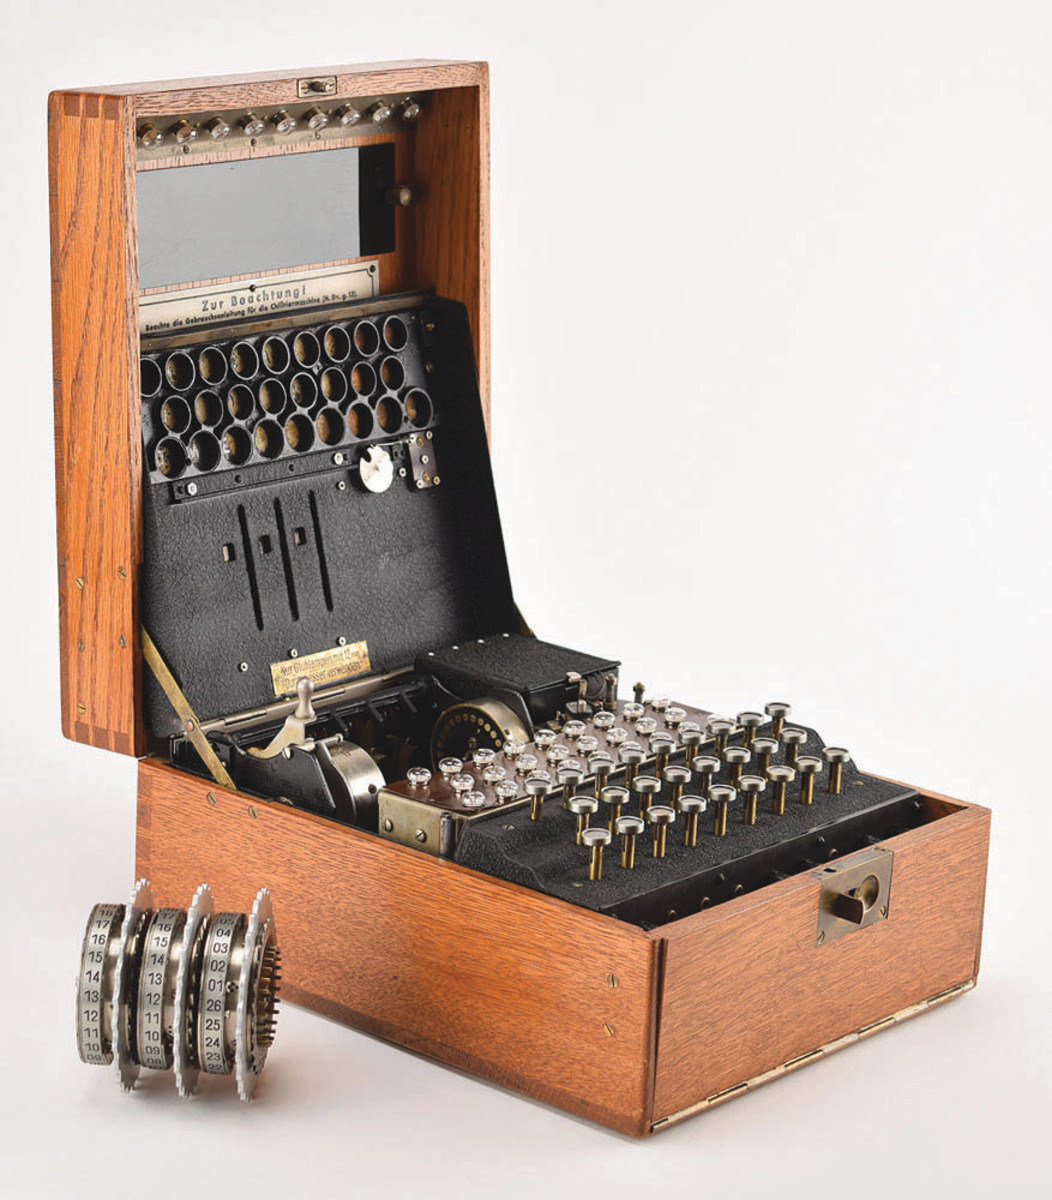 Enigma I electromechanical cipher machine, 1935, featuring an ebonite Steckerbrett (plugboard) on the front, which was exclusive to the German armed forces and exponentially increased the complexity of the code. This version of the Enigma is sometimes referred to as the Heeres (Army) Enigma, Wehrmacht Enigma, or Luftwaffe Enigma due to its military-specific application. This particular example boasts rare characteristics found only on early production machines: metal extra Stecker cable holders in the lid, rotors with all-metal construction, and original metal badges and tags. It sold at RR Auction for $338,630.